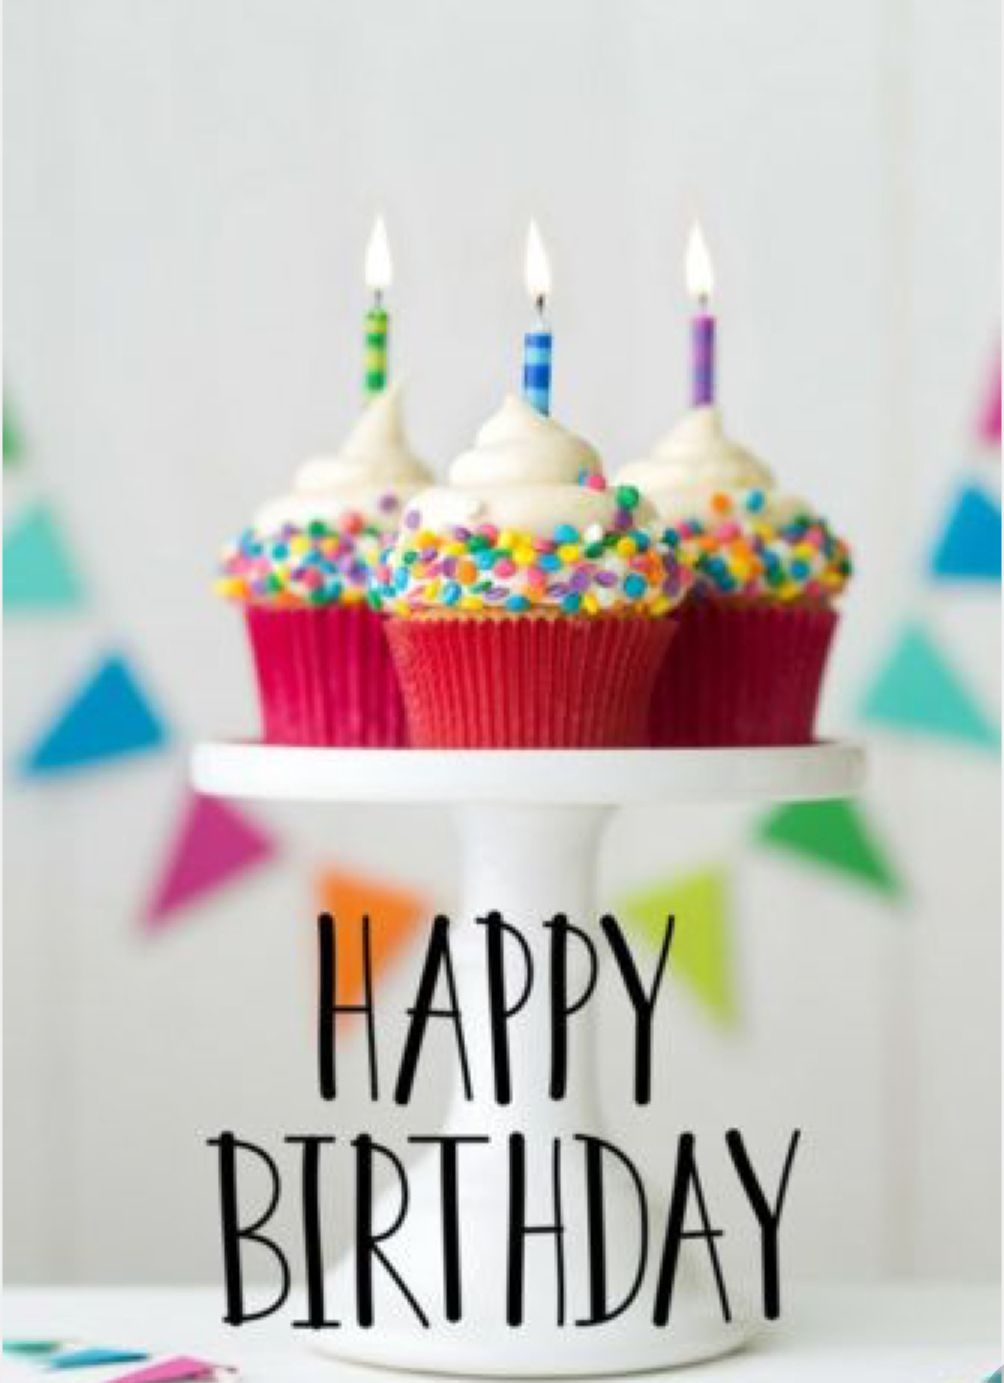 Pin by DLaVerne on Have a Happy... Happy birthday cakes